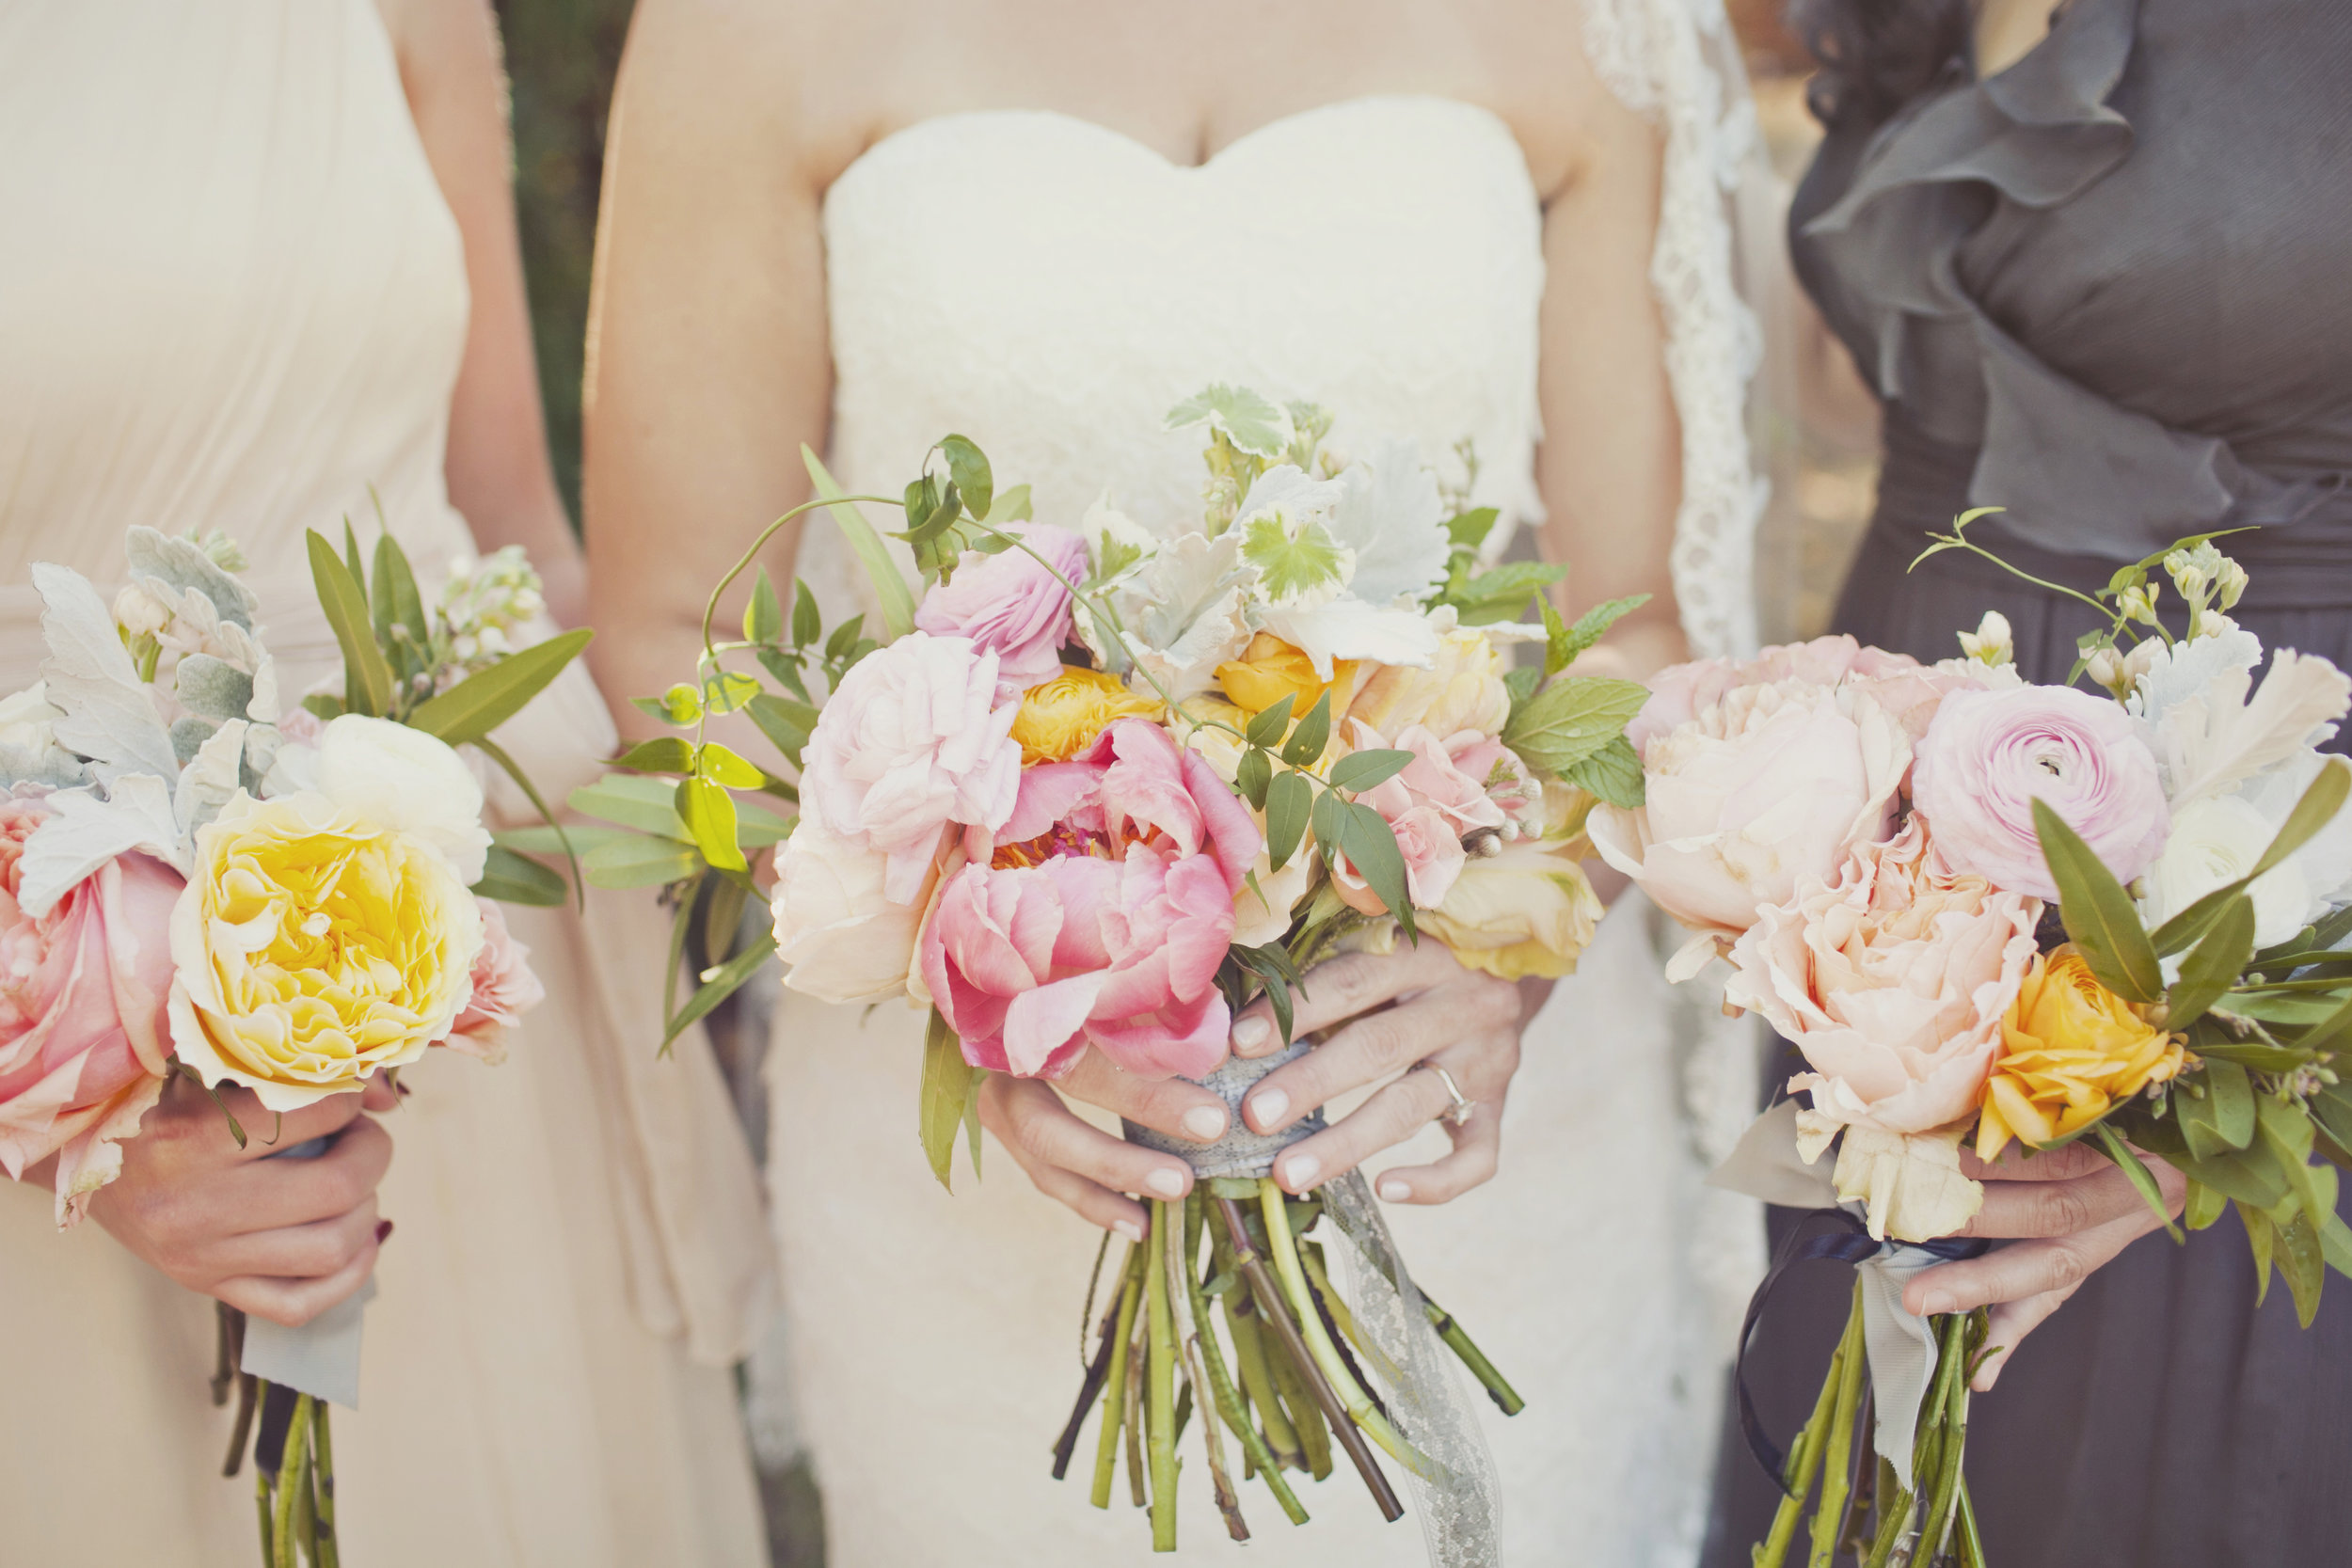 Simply-Charming-Socials_Atlanta-Wedding-Planner_Our-Labor-Of-Love_Maggie-and-Greg_7.jpg